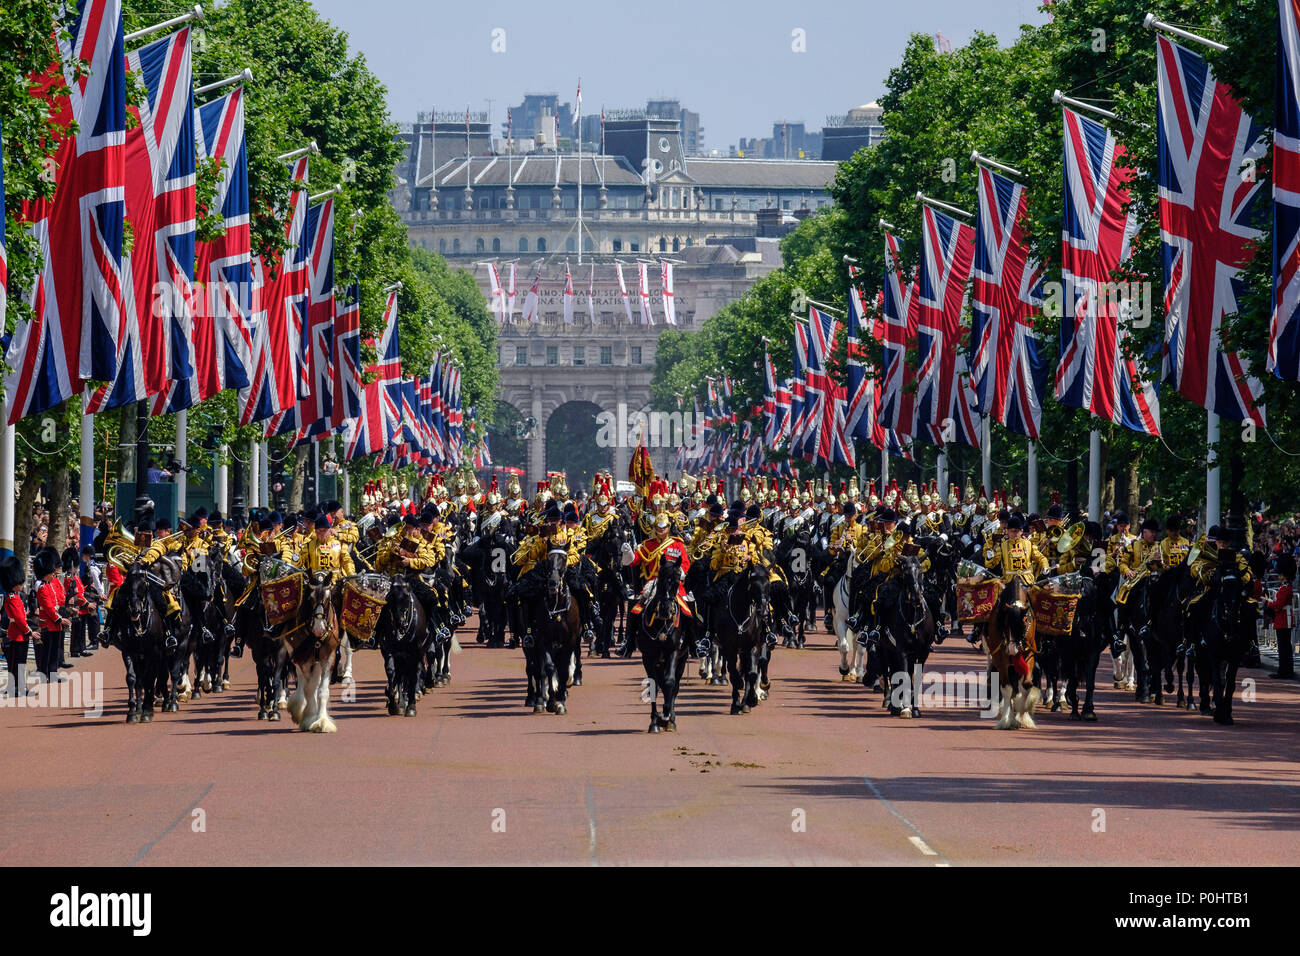 The mounted bands of the Household Calvary at Trooping the Colour and Queens Birthday Parade on Saturday 9 June 2018 in Buckingham Palace , London. Pictured: The mounted bands of the Household Calvary, return from Horseguards Parade. Picture by Julie Edwards. Credit: Julie Edwards/Alamy Live News Stock Photo